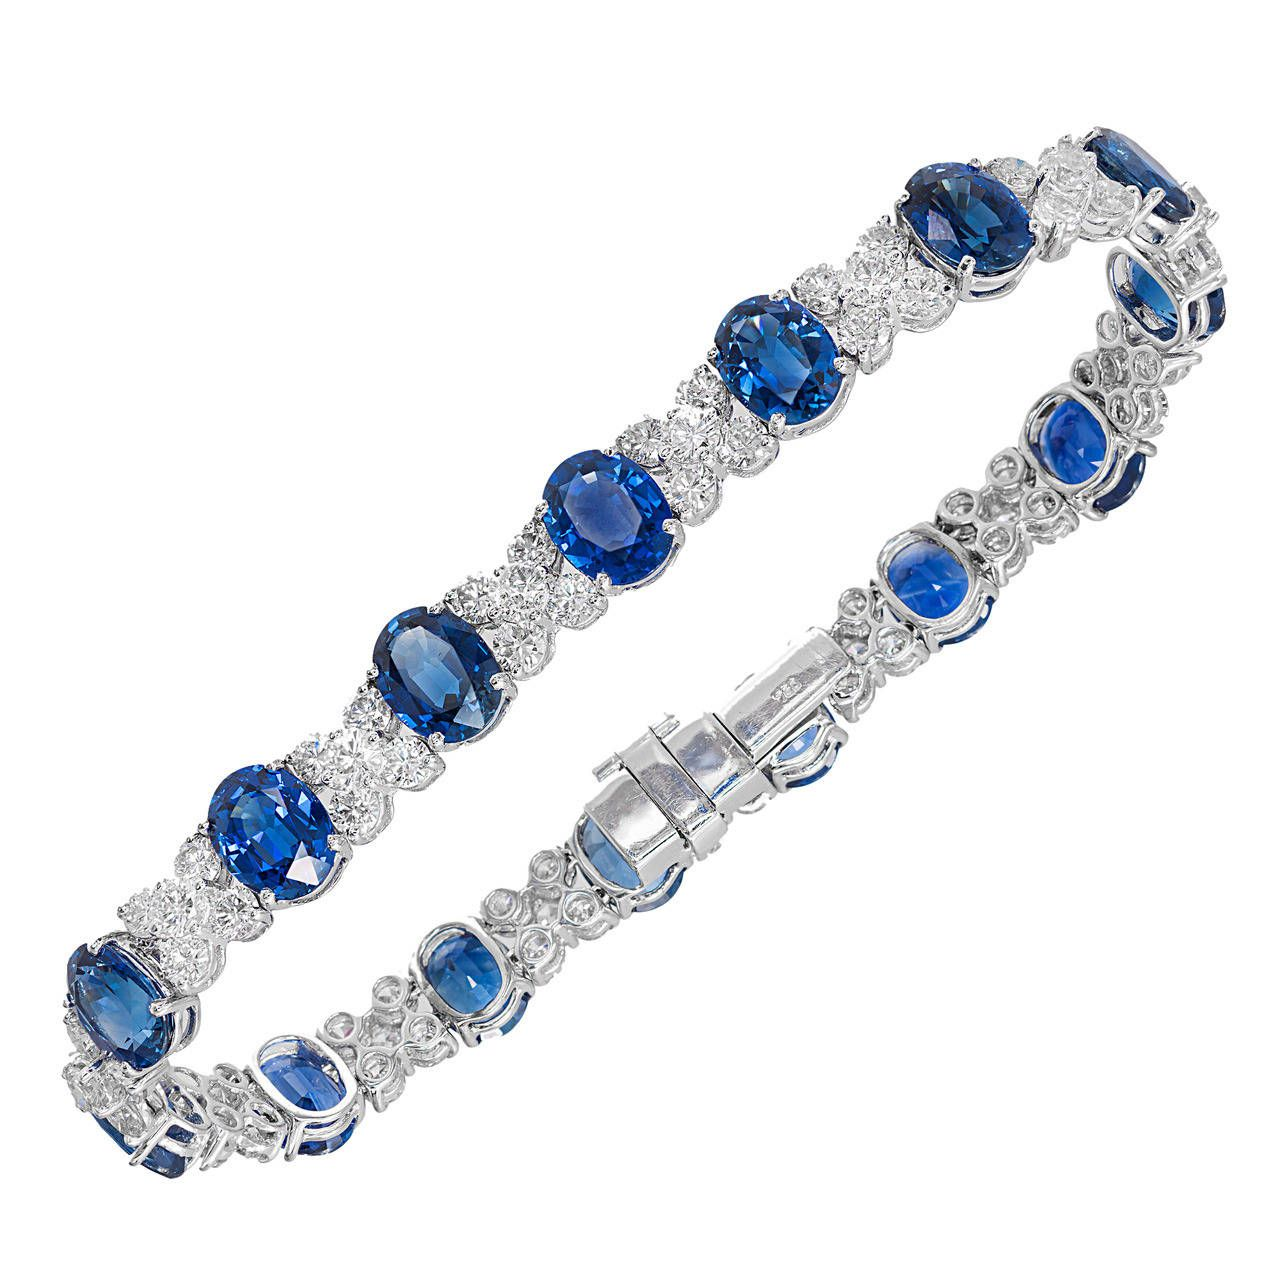 Gia Certified 28 95 Carat Cornflower Oval Sapphire Diamond White Gold Bracelet In 2020 Sapphire Bracelet White Gold Bracelet Diamond